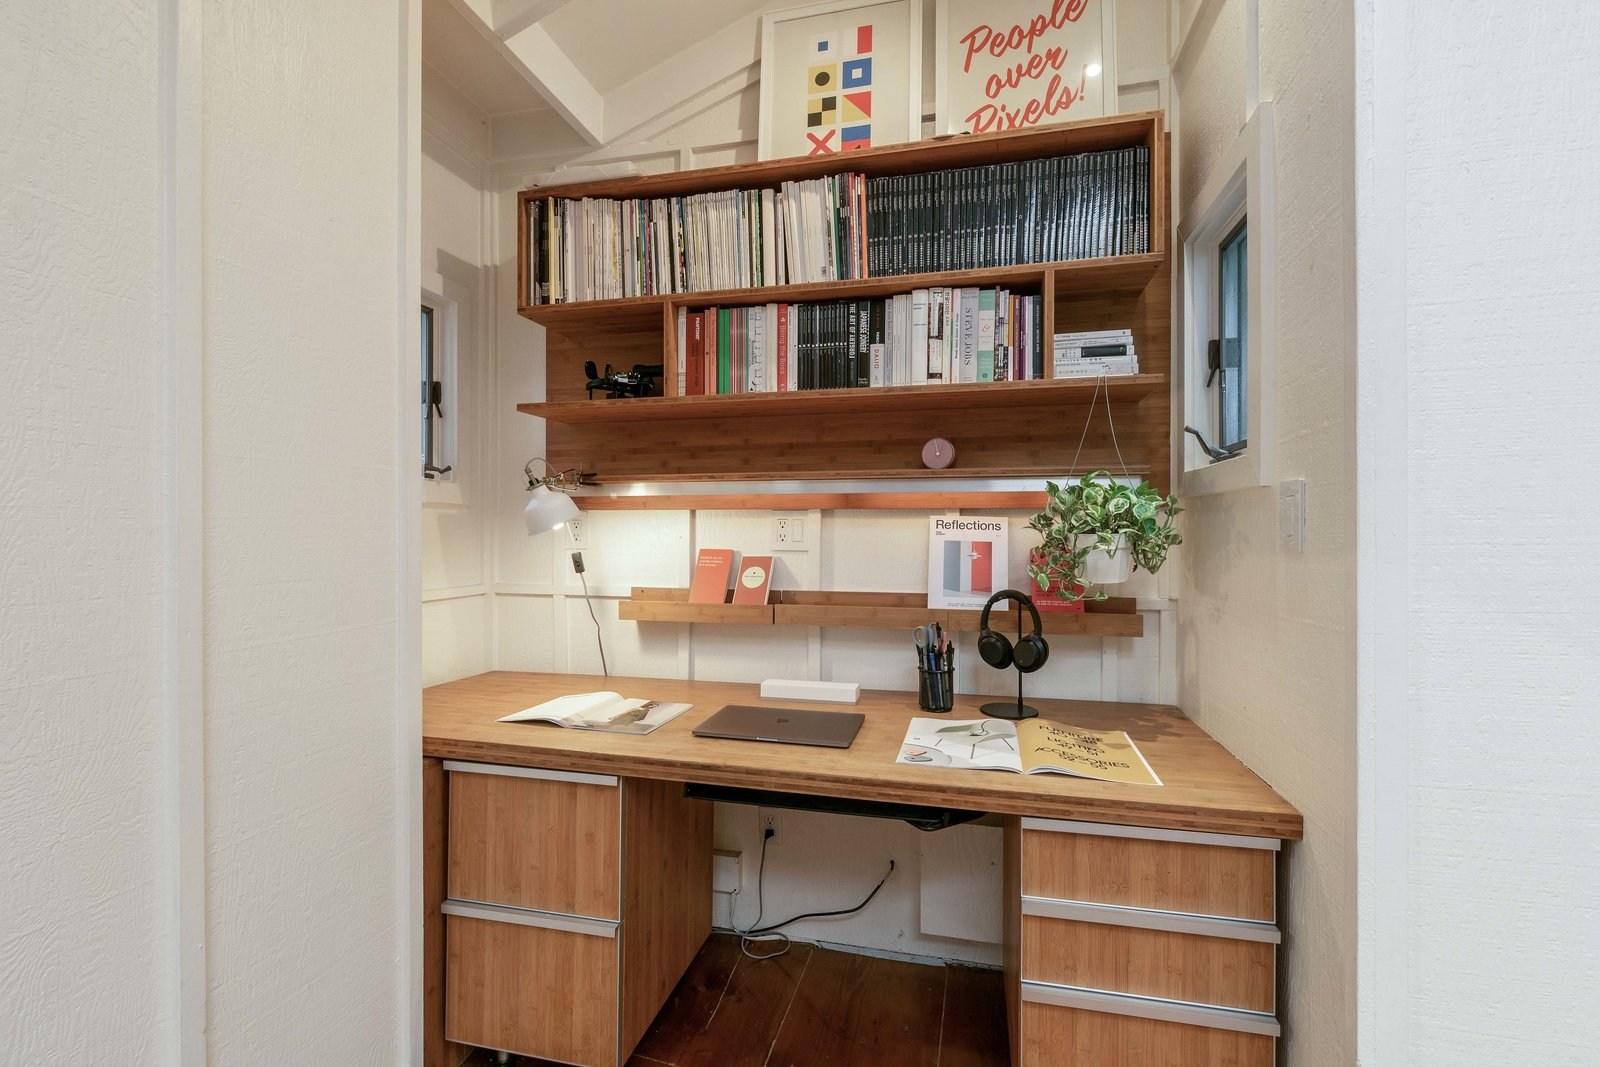 A built-in desk occupies a nook in one corner of the kitchen/dining area.  Photo 7 of 13 in An Idyllic Cottage With a Garden Studio Seeks $1.8M in San Francisco